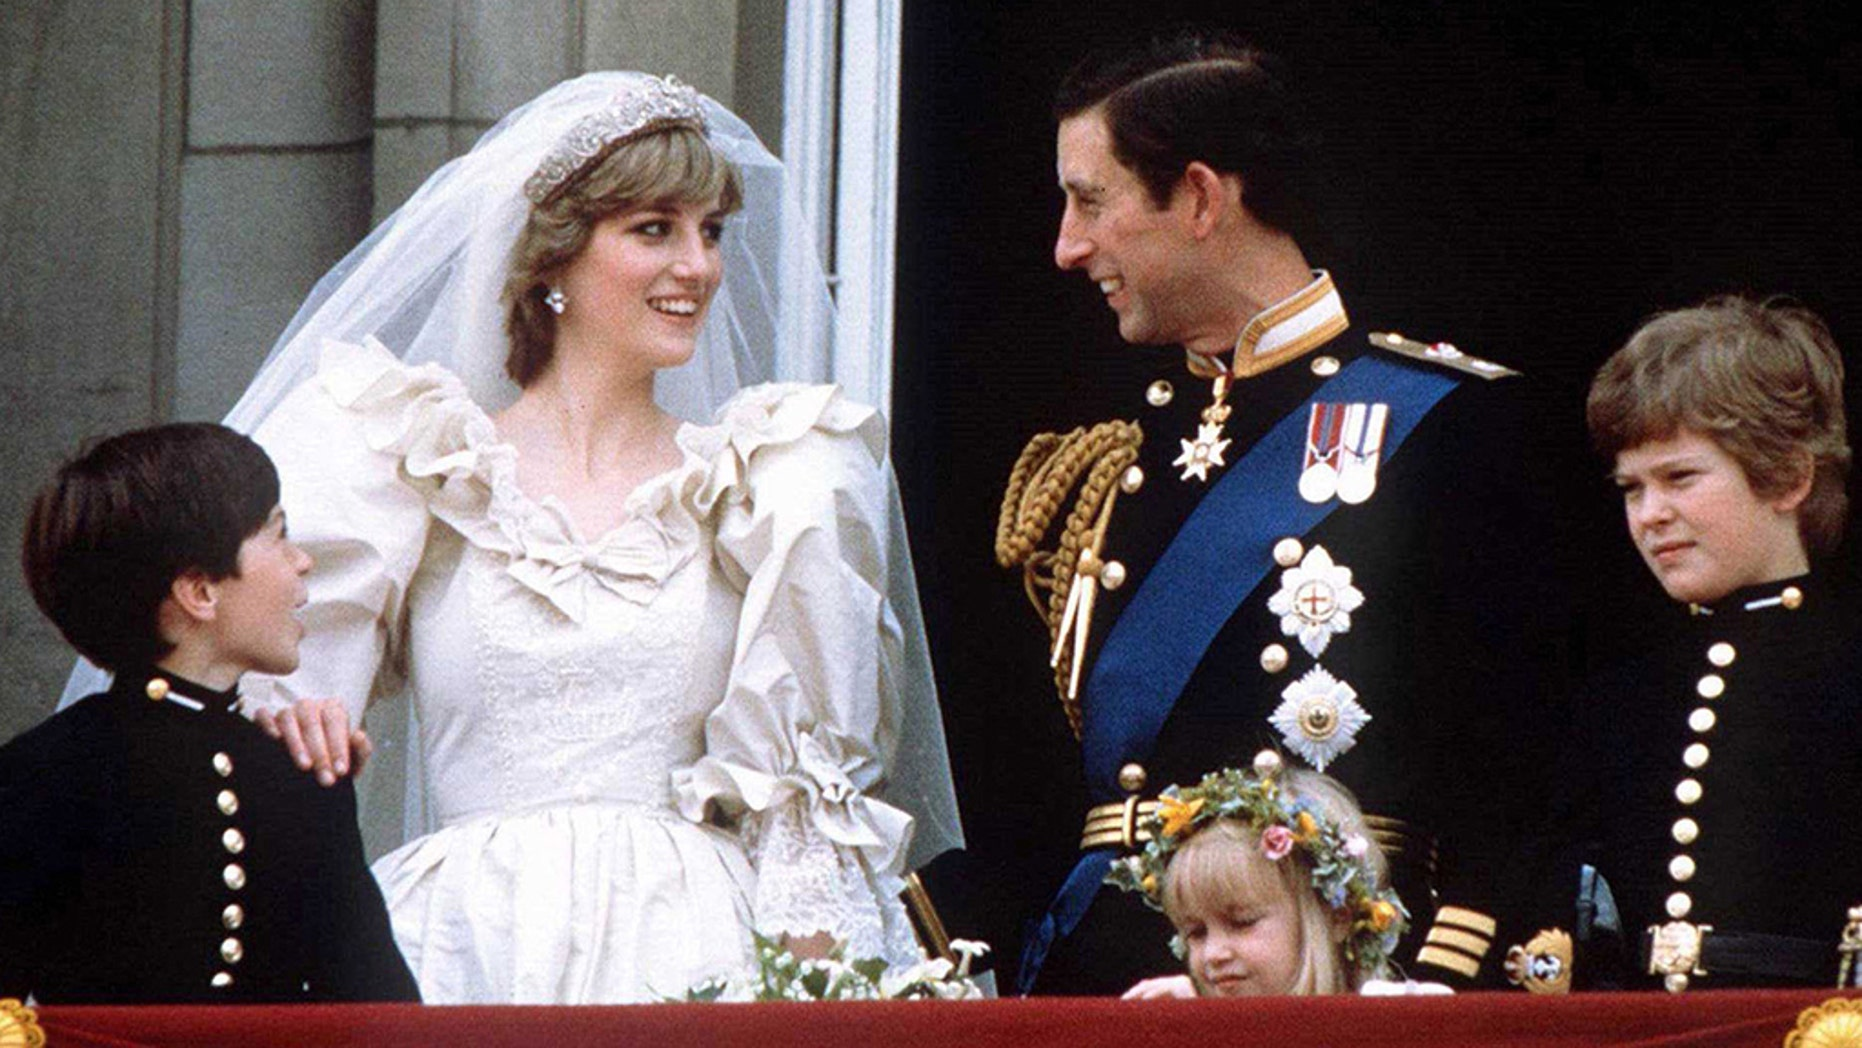 Charles And Diana Wedding.Princess Diana S Waist Shrunk Down To 23 Inches For Her Wedding To